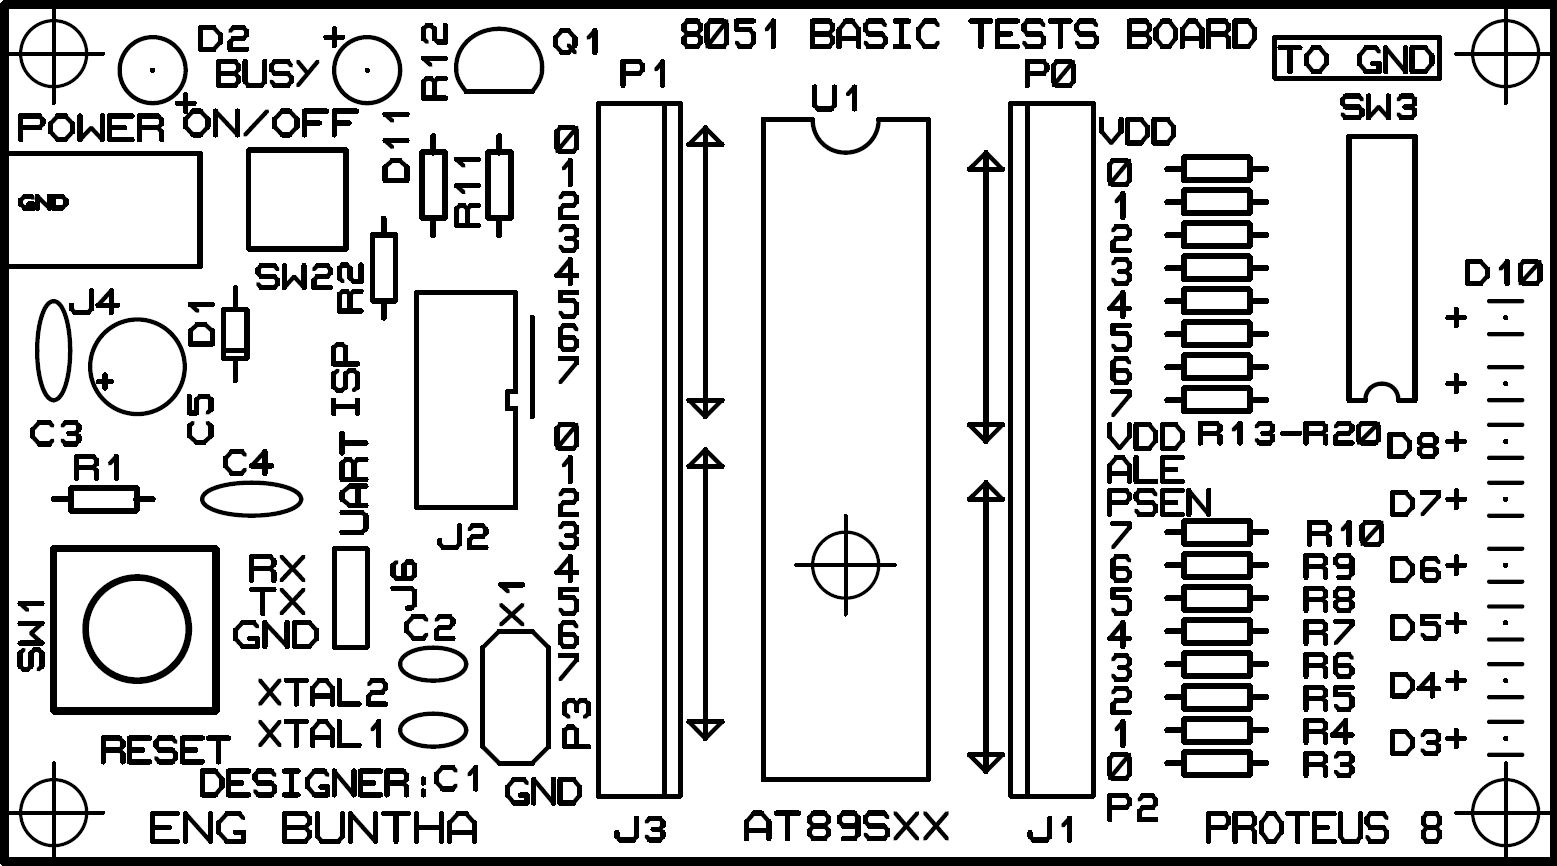 Making a 8051 basic test board using AT89S52